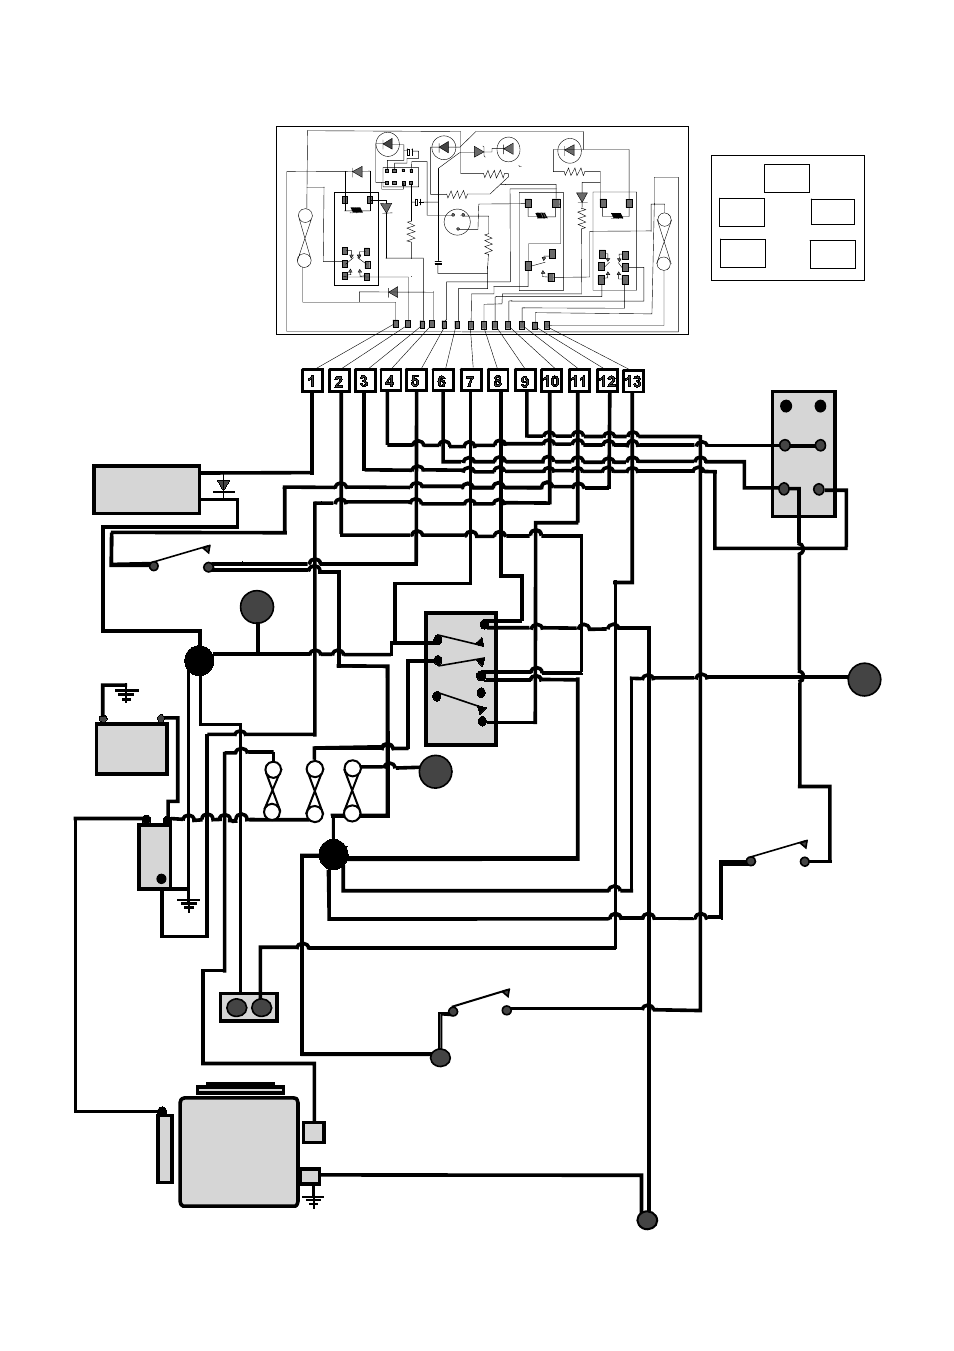 countax c60 wiring diagram detailed schematic diagrams rh redrabbit studios com lawn tractor wiring schematics tractor wiring diagram